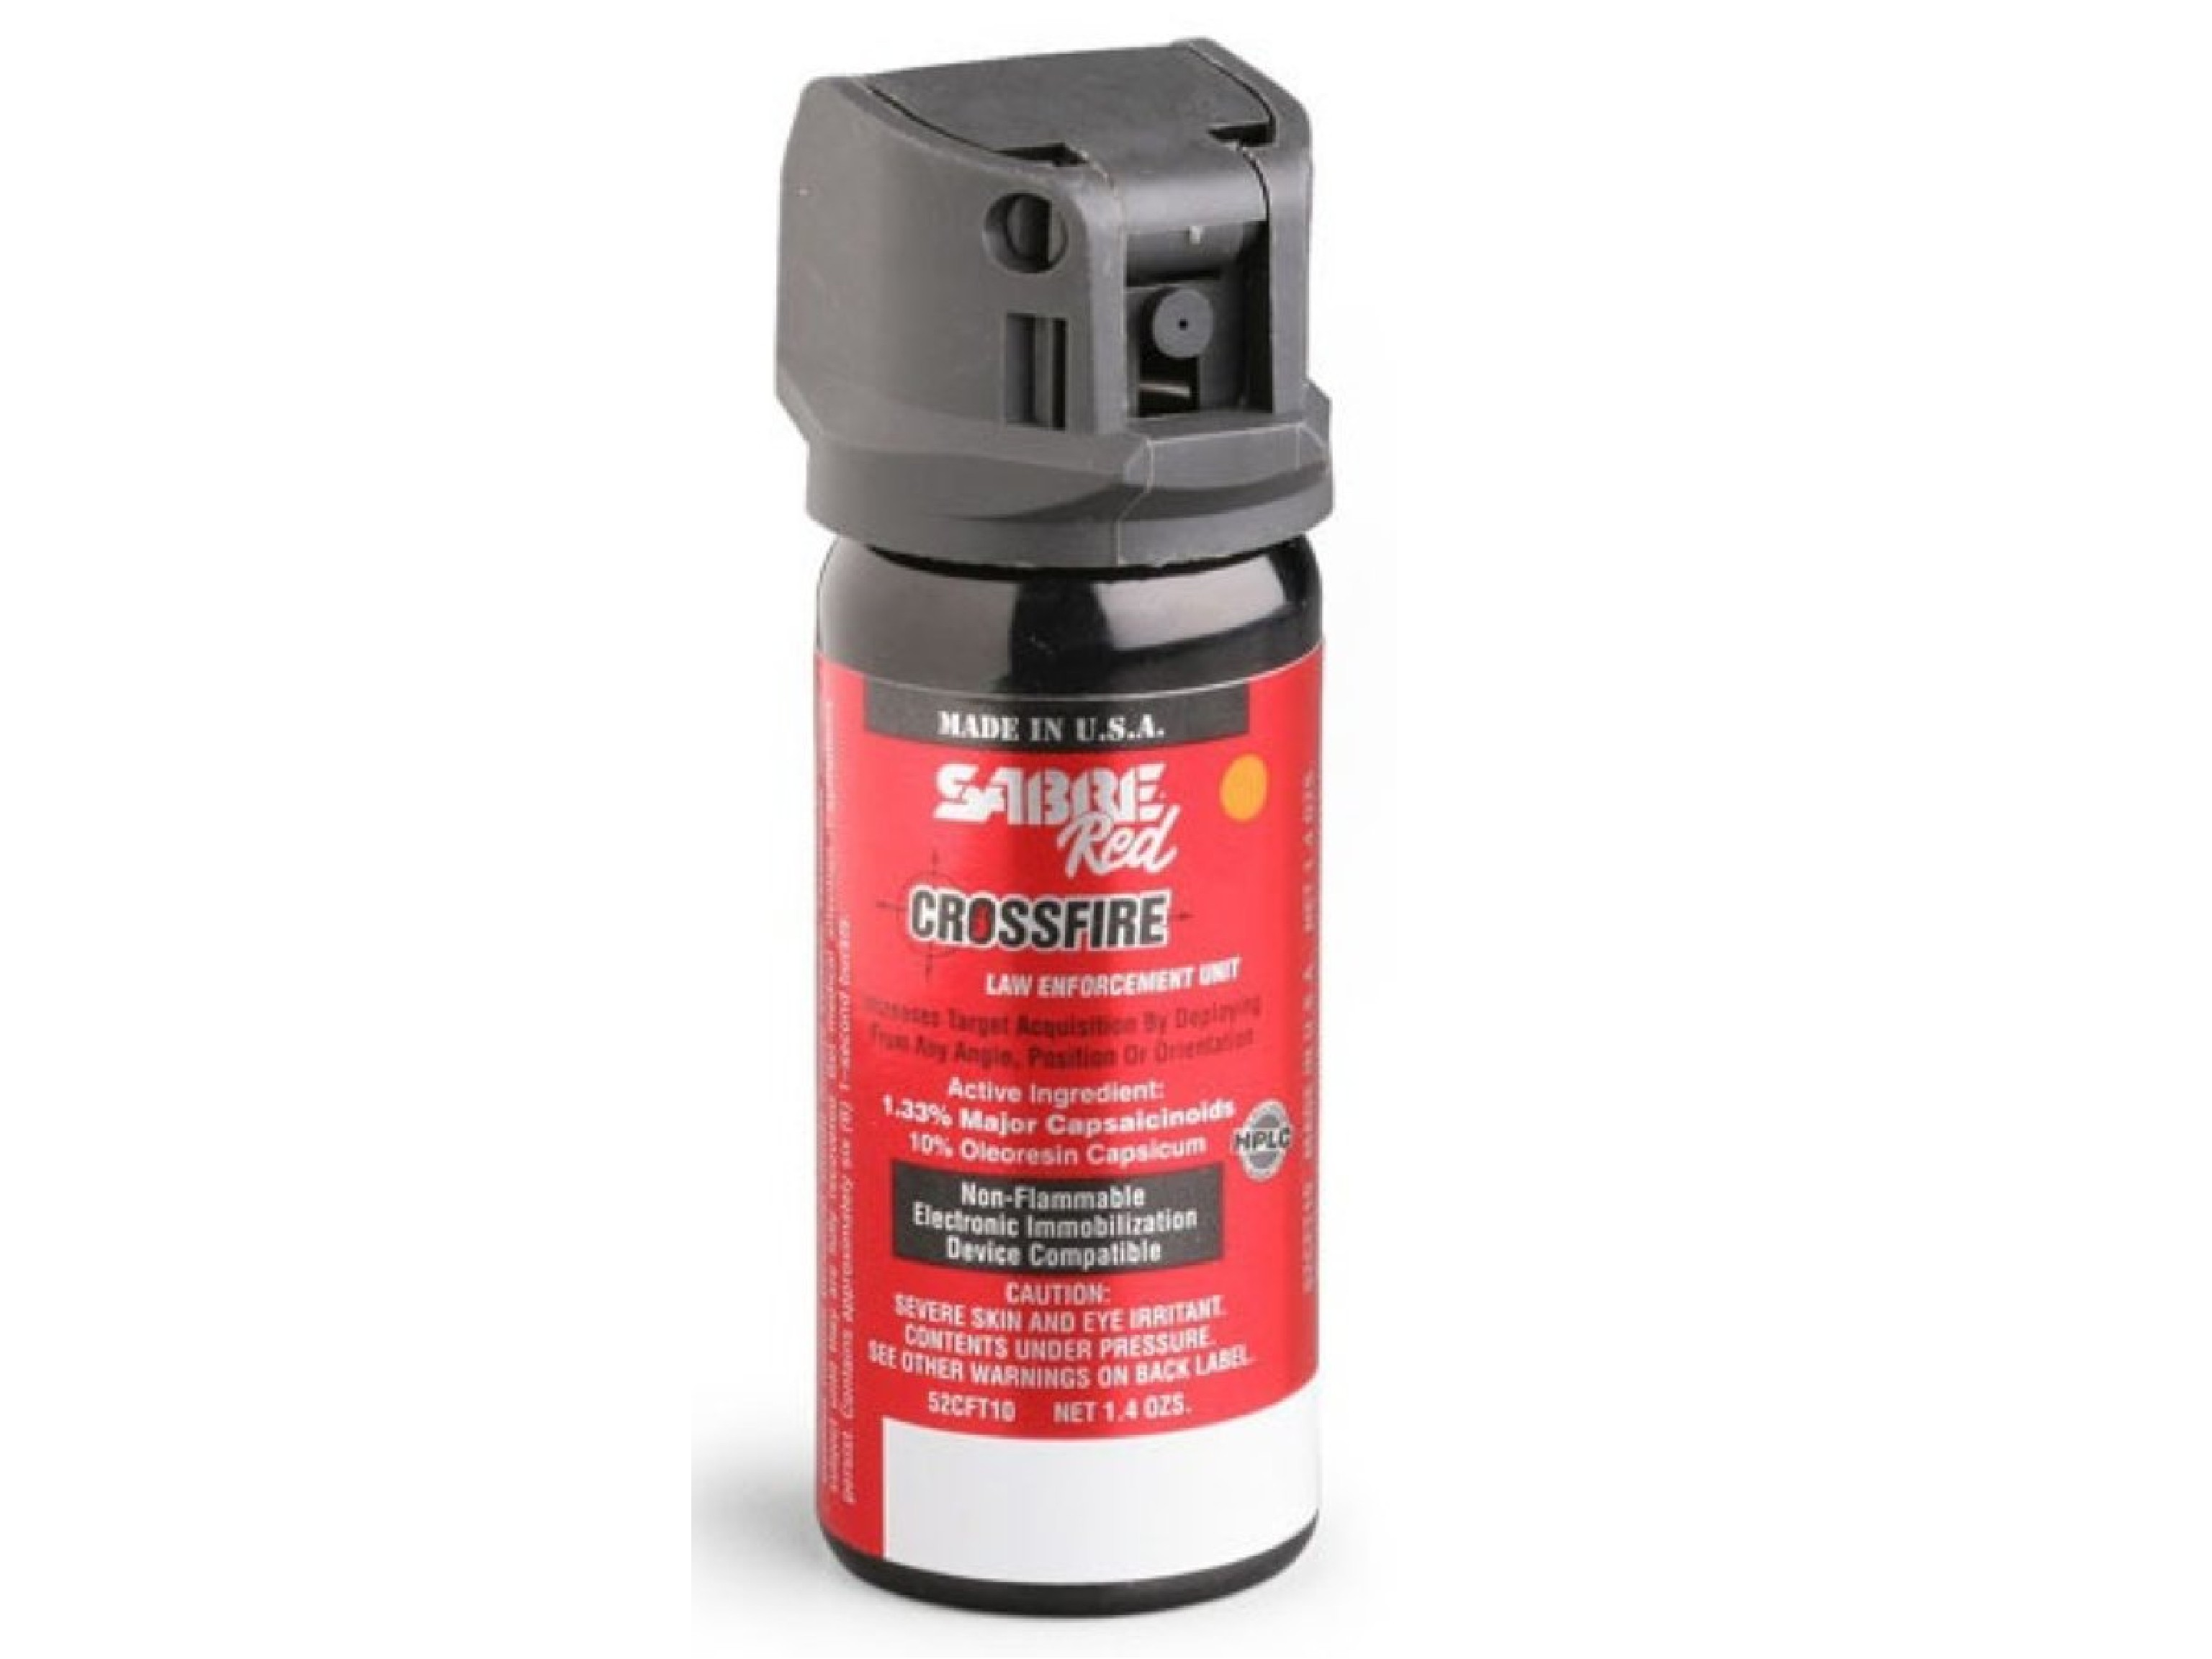 spray da difesa MK3  51gr  Gel